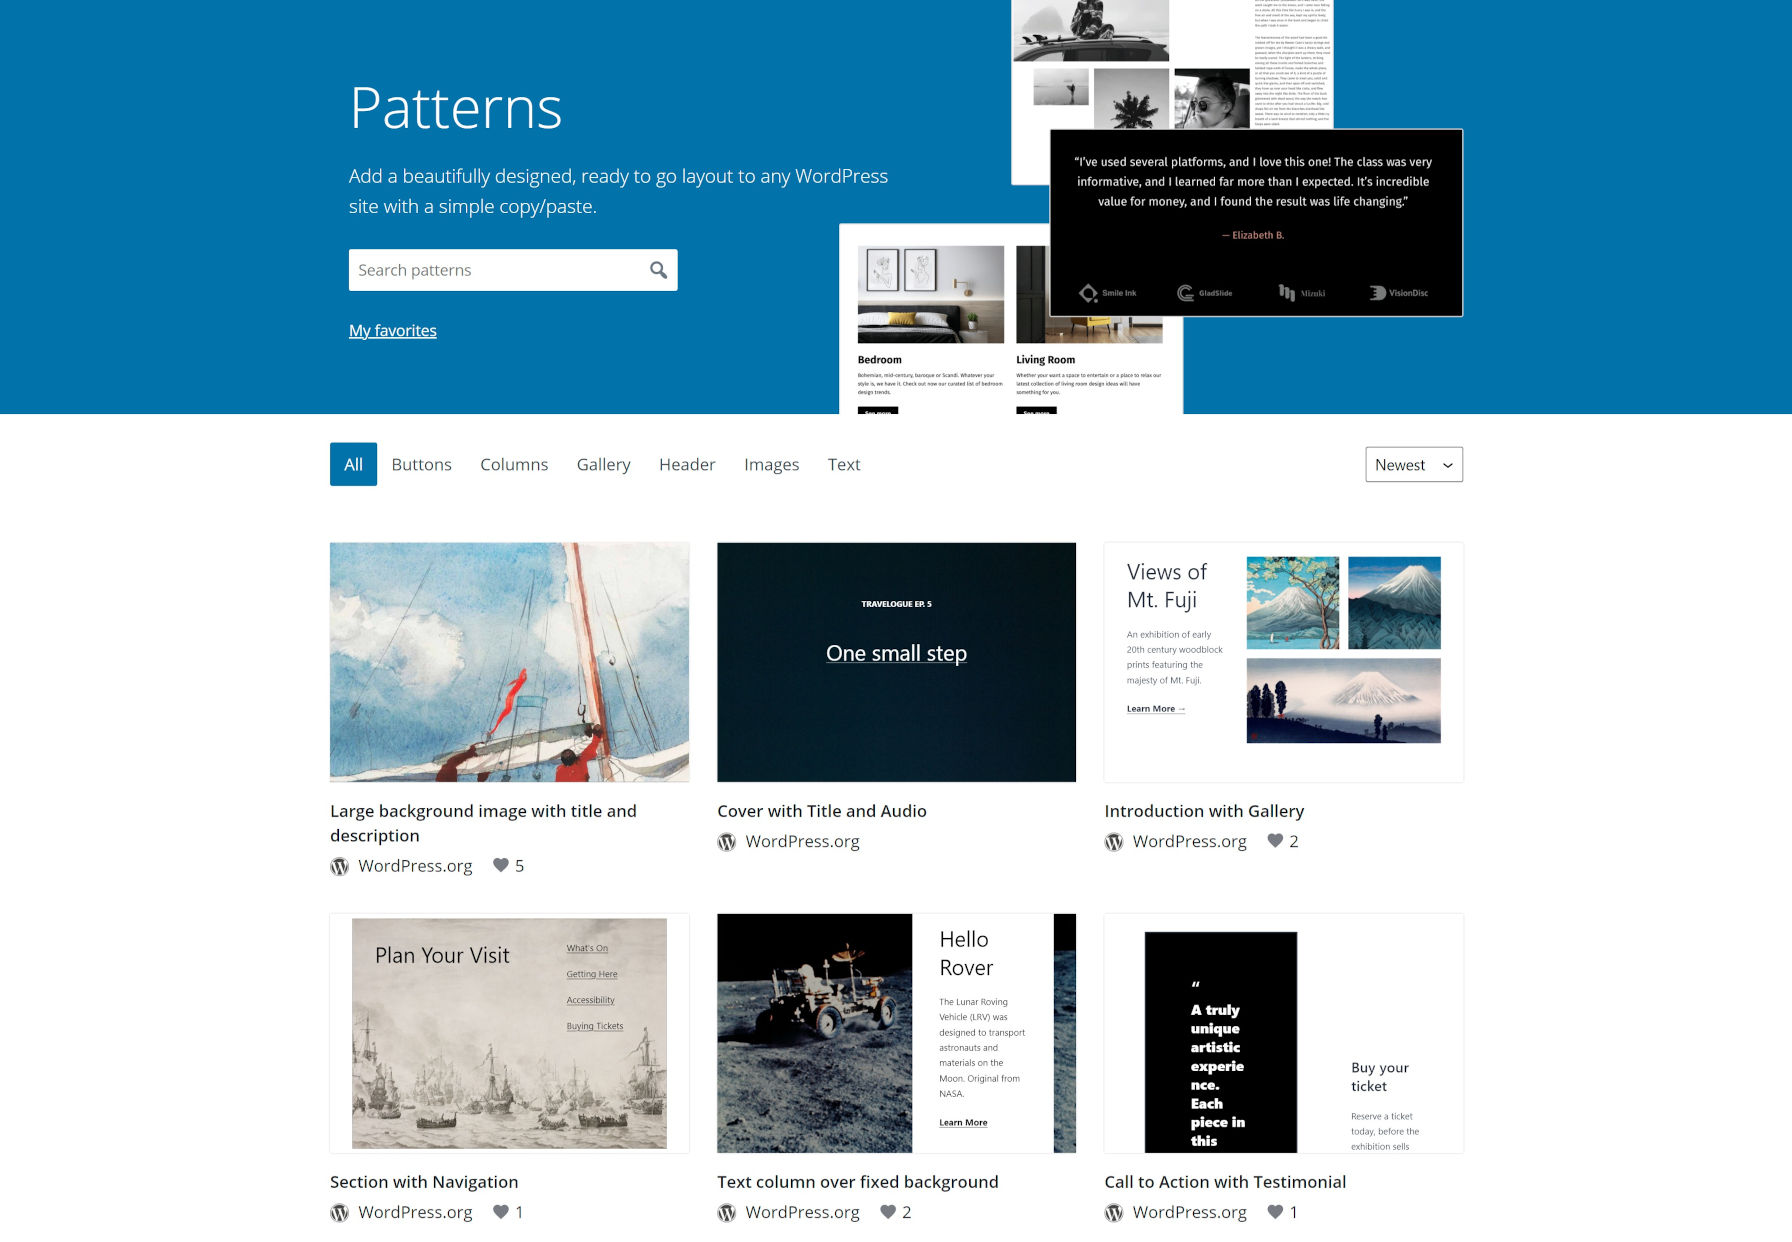 Homepage for the WordPress.org pattern directory, showcasing the latest pattern submissions in a grid.